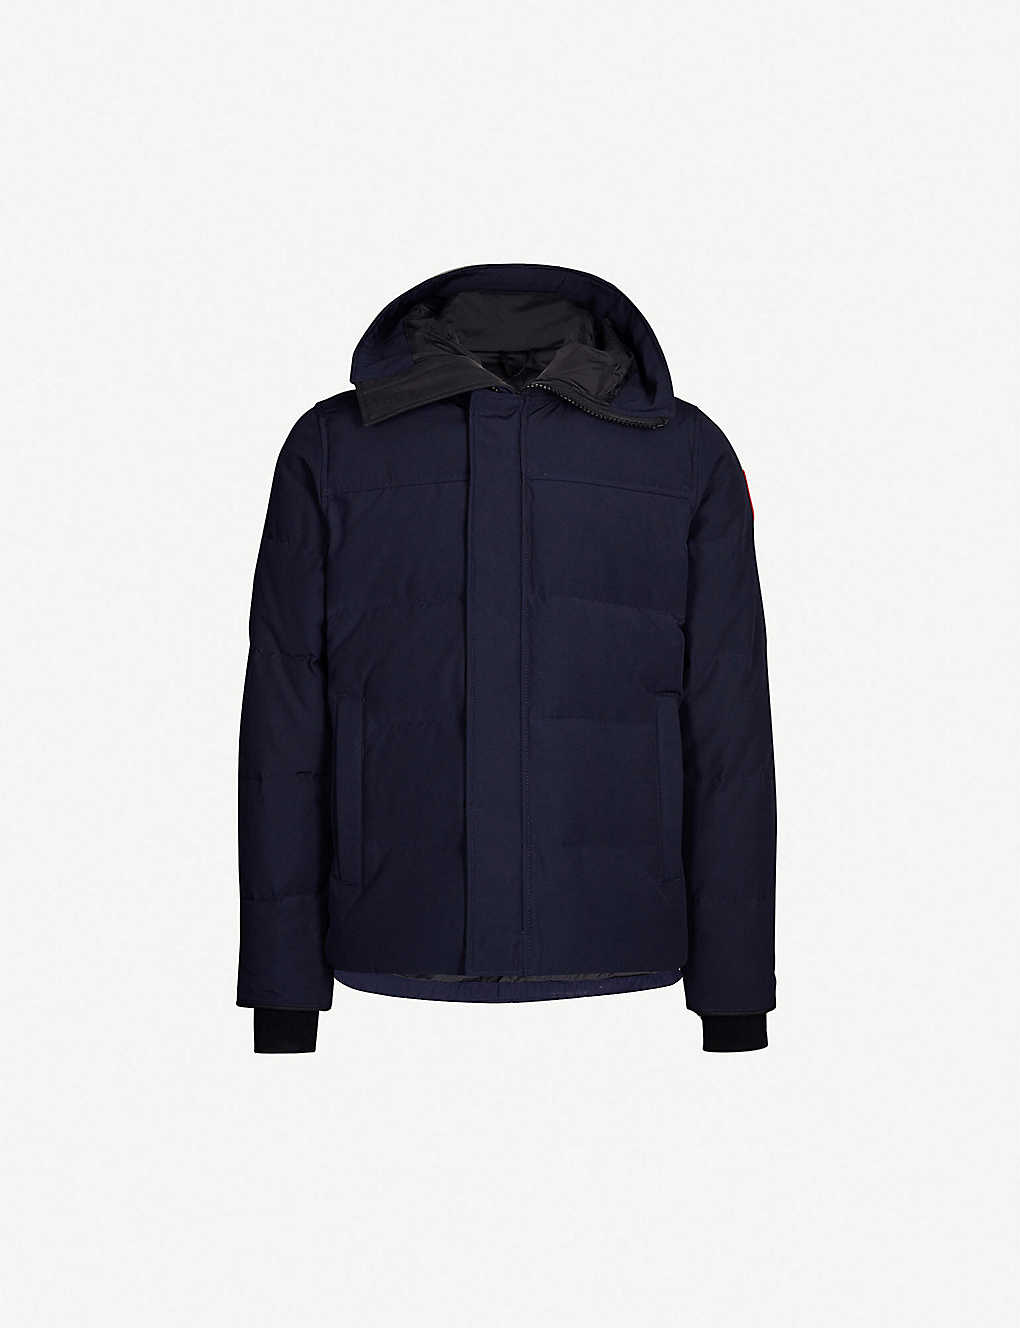 CANADA GOOSE - Macmillan quilted parka  90bf29a80c